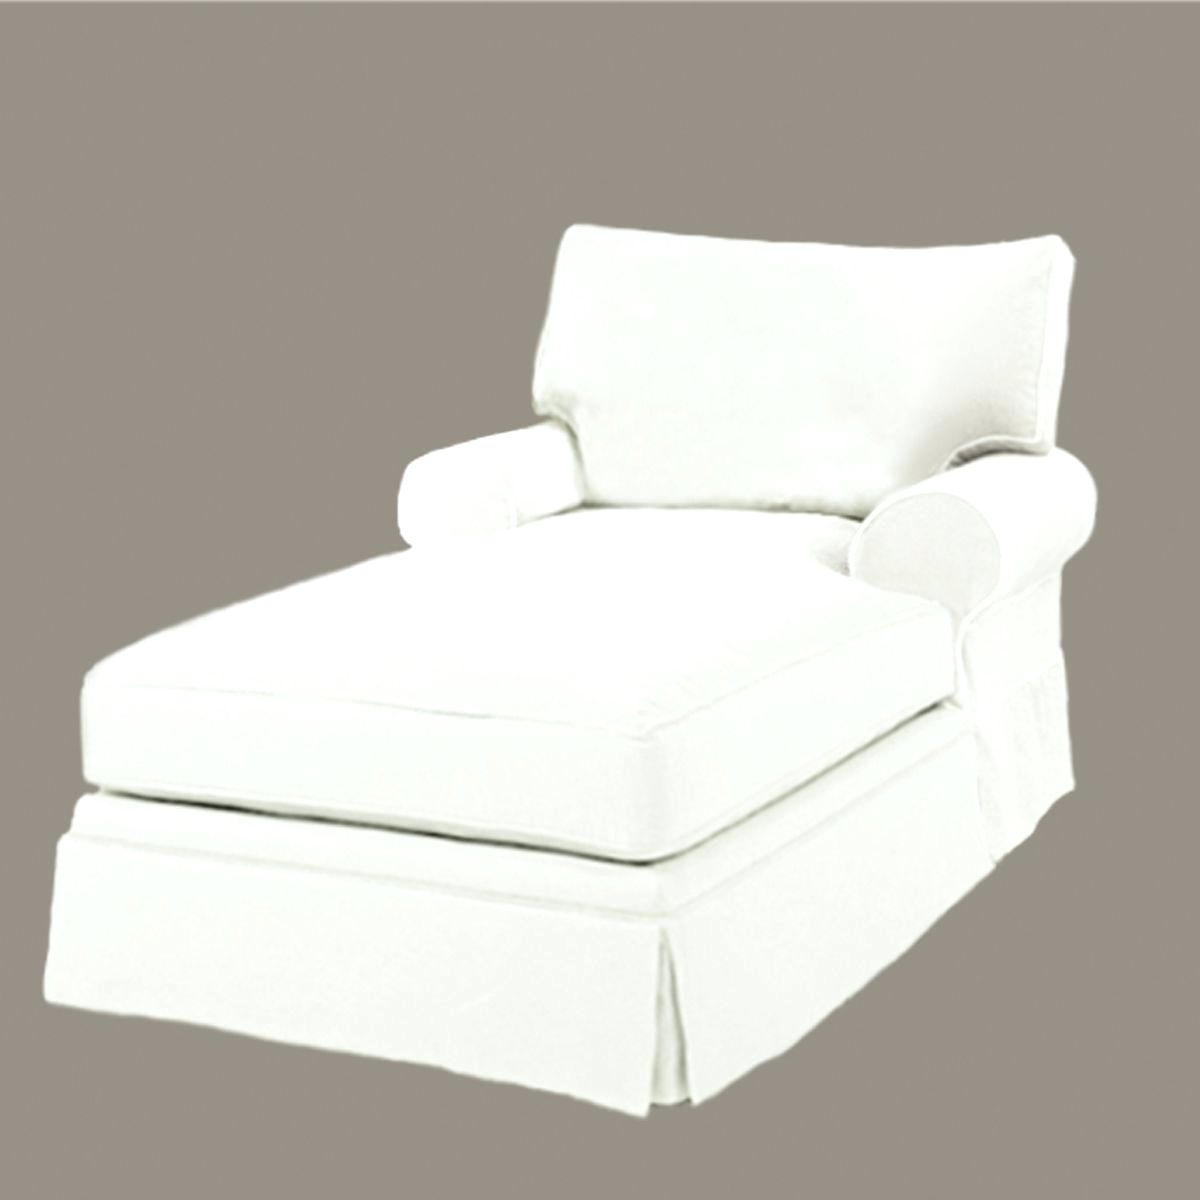 Chaise Lounge Chairs With Arms Slipcover Throughout Trendy Cover For Indoor Chaise Lounge Chair • Lounge Chairs Ideas (View 4 of 15)